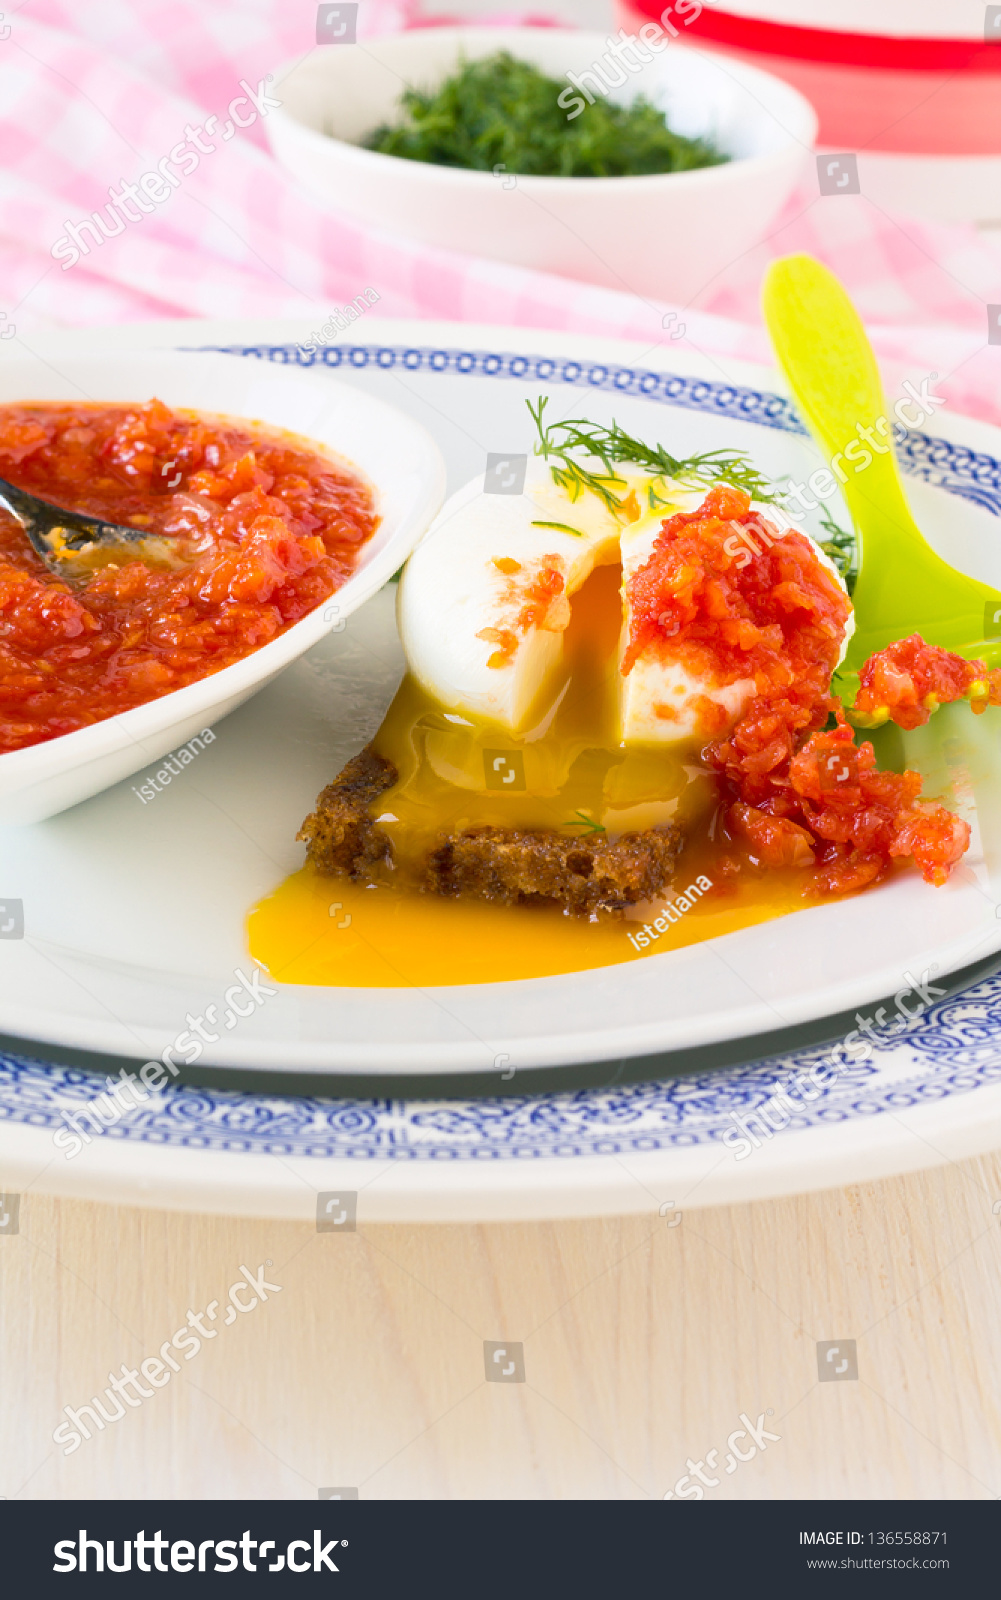 Sliced Poached Egg Breakfast With Tomato Sauce And Dill ...